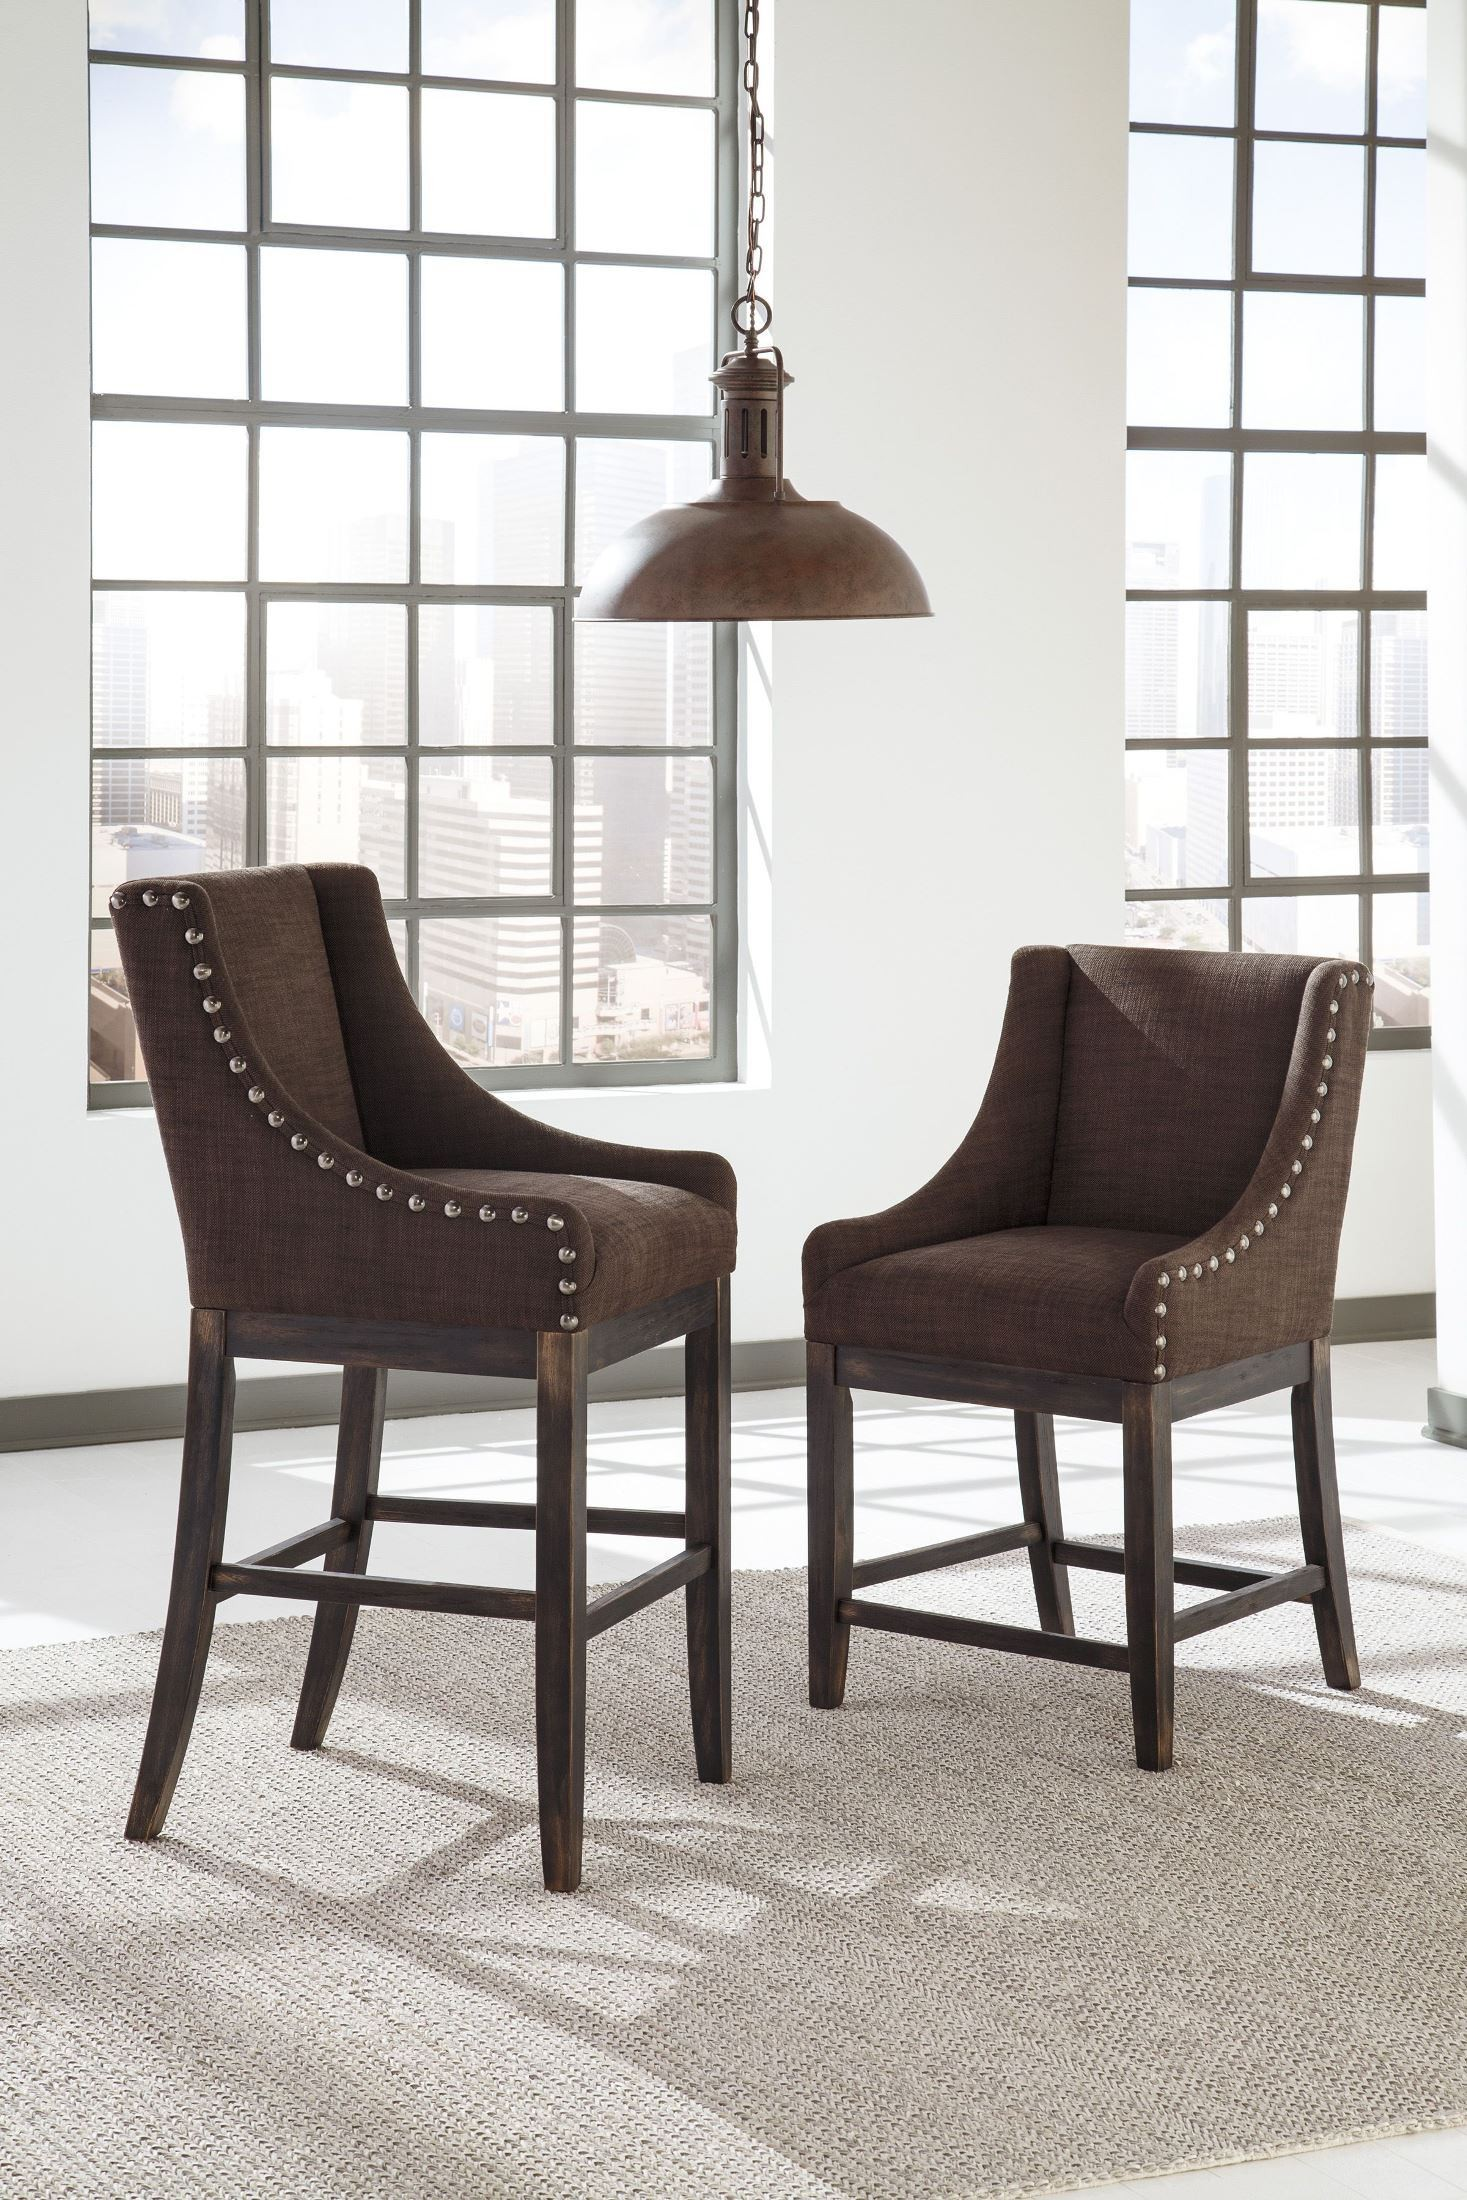 Moriann Dark Brown Tall Upholstered Barstool Set of 2 from Ashley ...